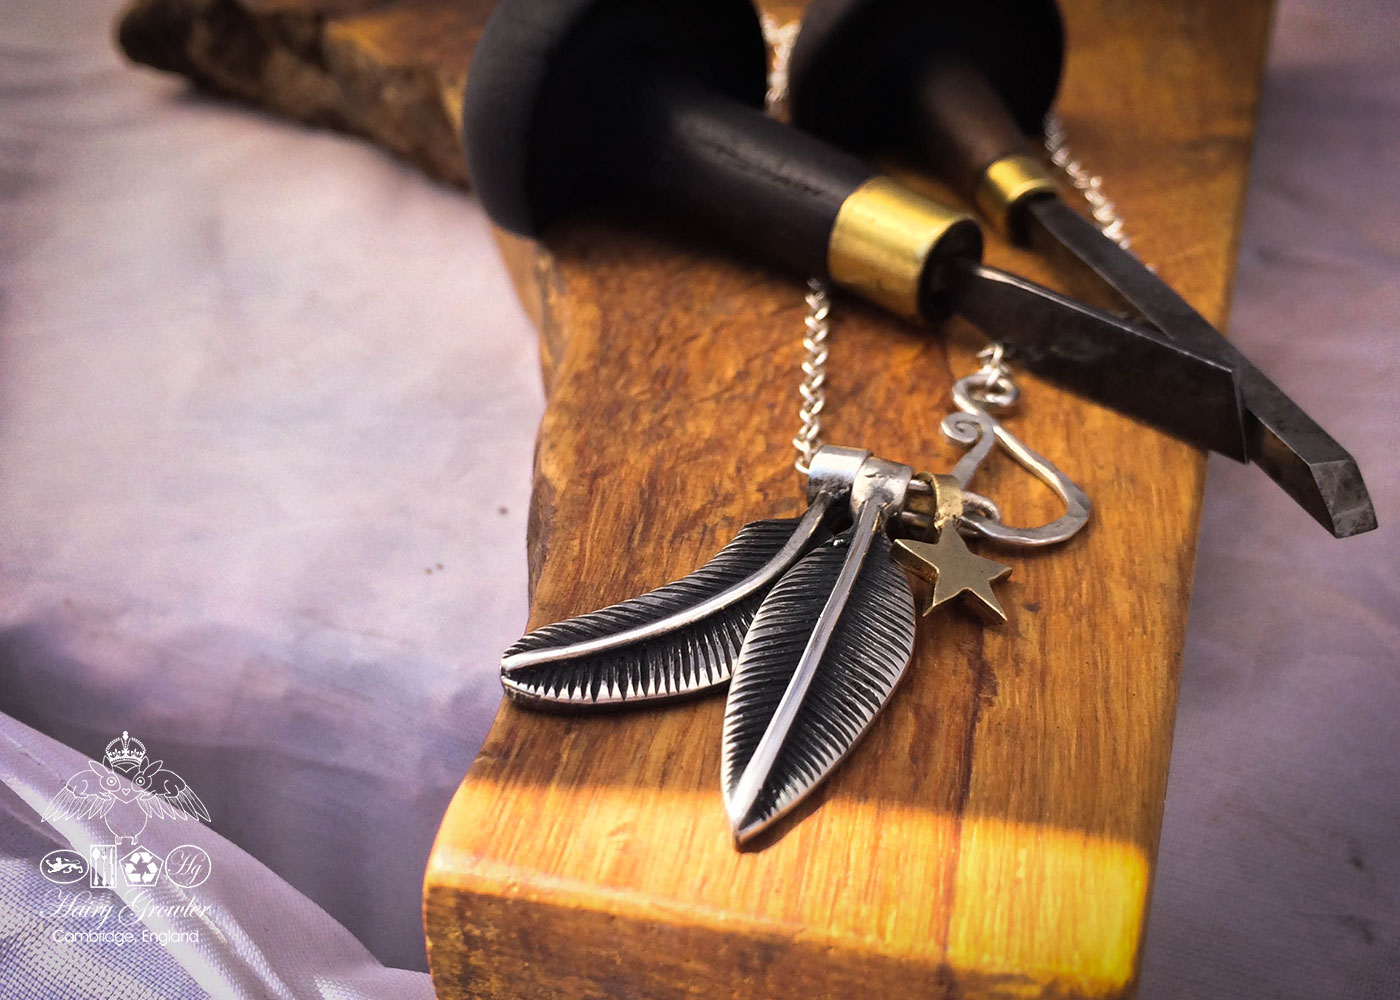 In much of my art and jewellery feathers seem to make an appearance whether planned or not; They work for me as a way to focus my attention on detail. I love finding them around and about, outside my cave. It has been noted by some that call themselves fr